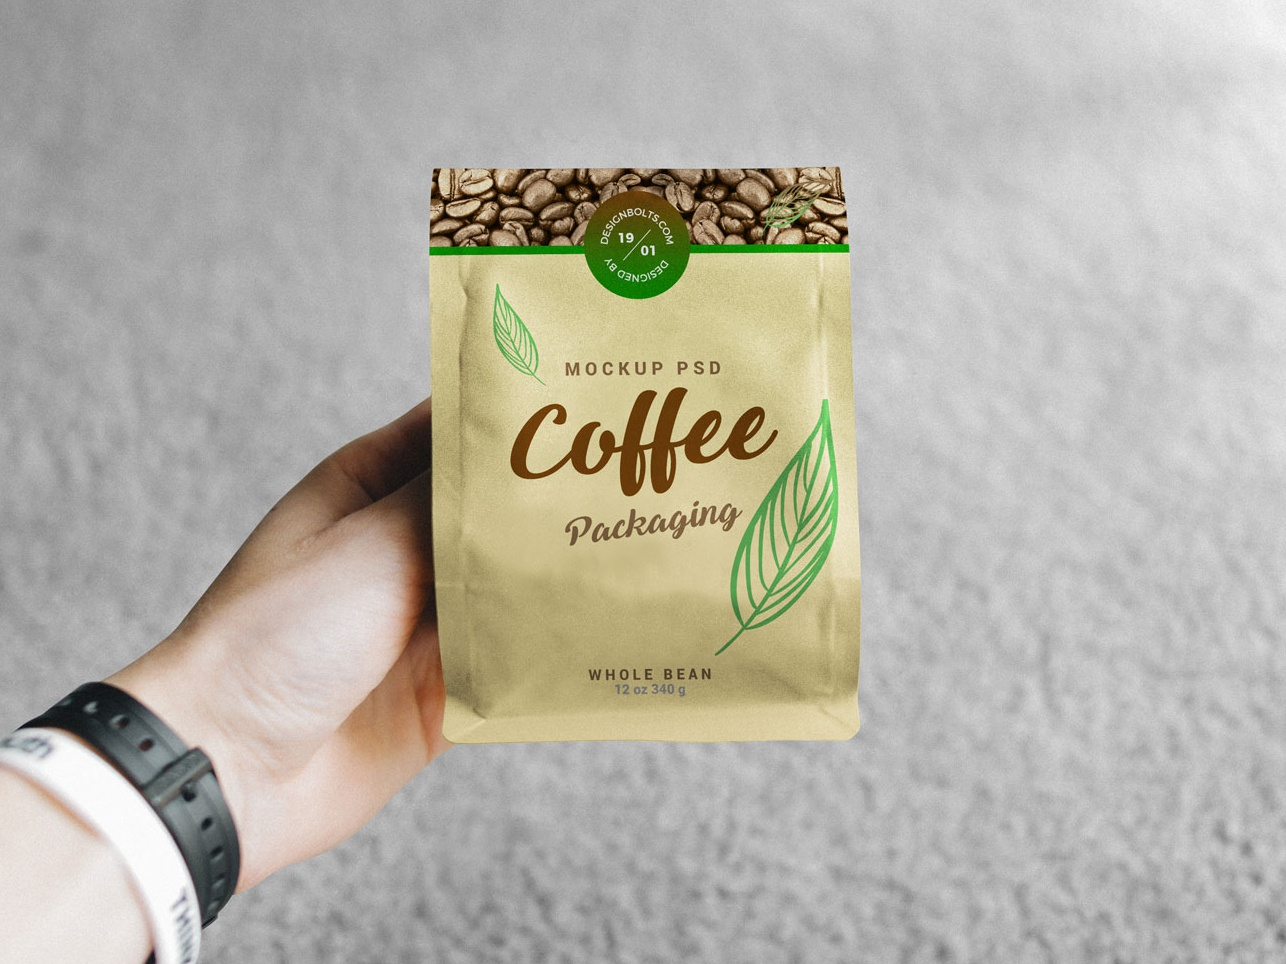 Free Hand Holding Coffee Packaging Mockup PSD free download mock-up free psd psd psd mockup mockup freebie free mockup mockup psd packaging mockup coffee mockup coffee bag mockup